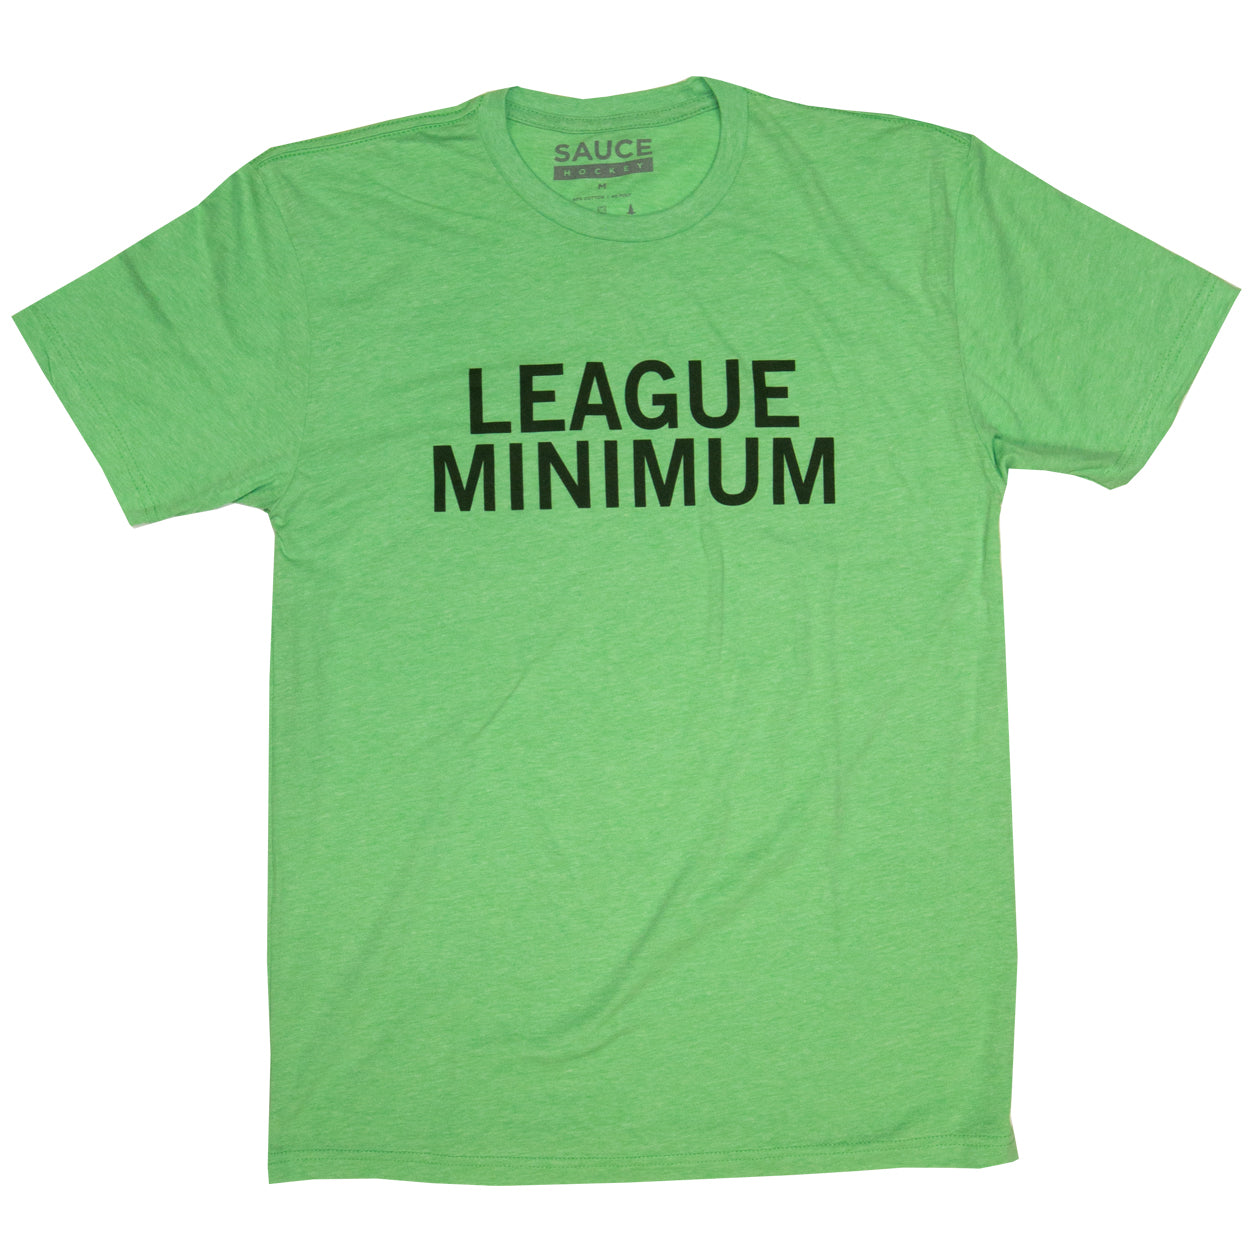 LEAGUE MINIMUM (MONEY GREEN)